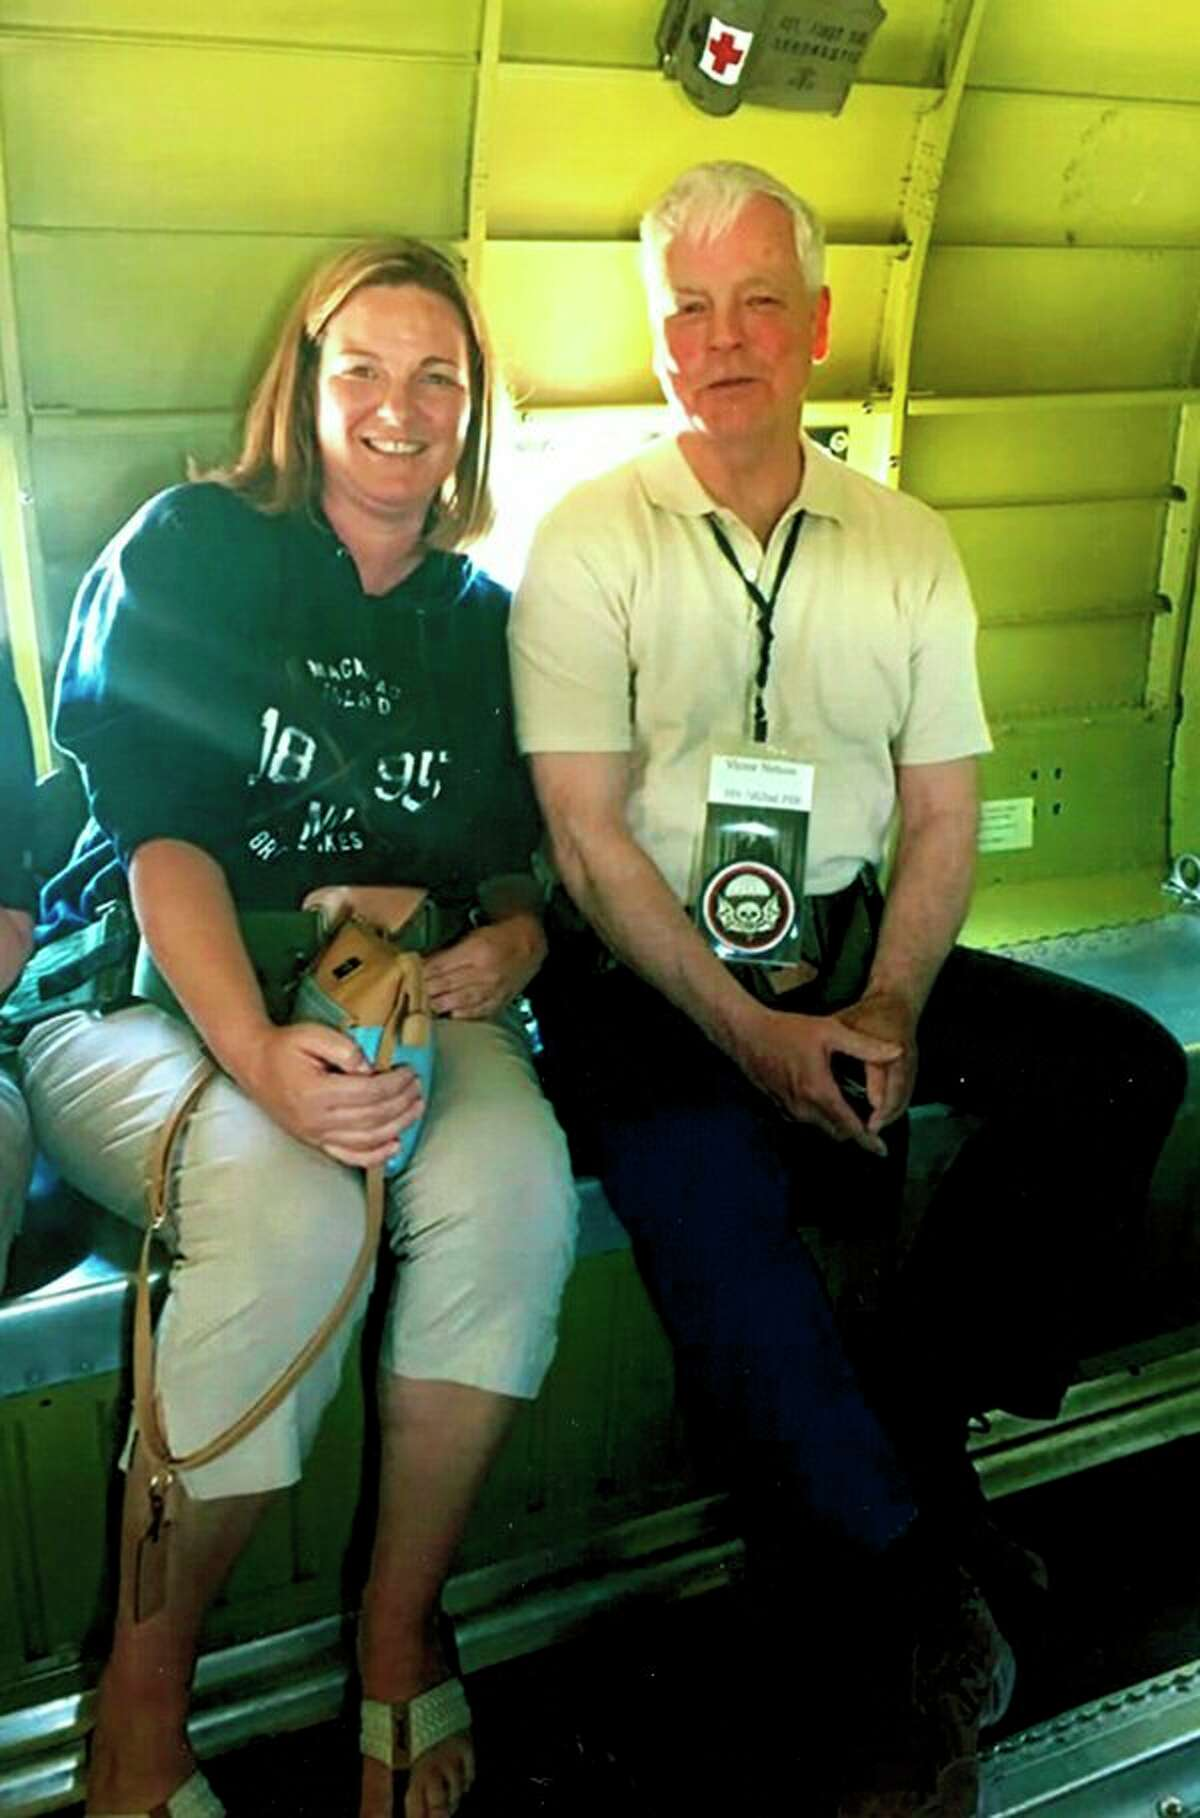 Shawna Anderson and her dad Chip Nelson are photographed in the plane 'That's All Brother' in Peachtree City, Georgia, for the 16th Annual WWII Heritage Days.